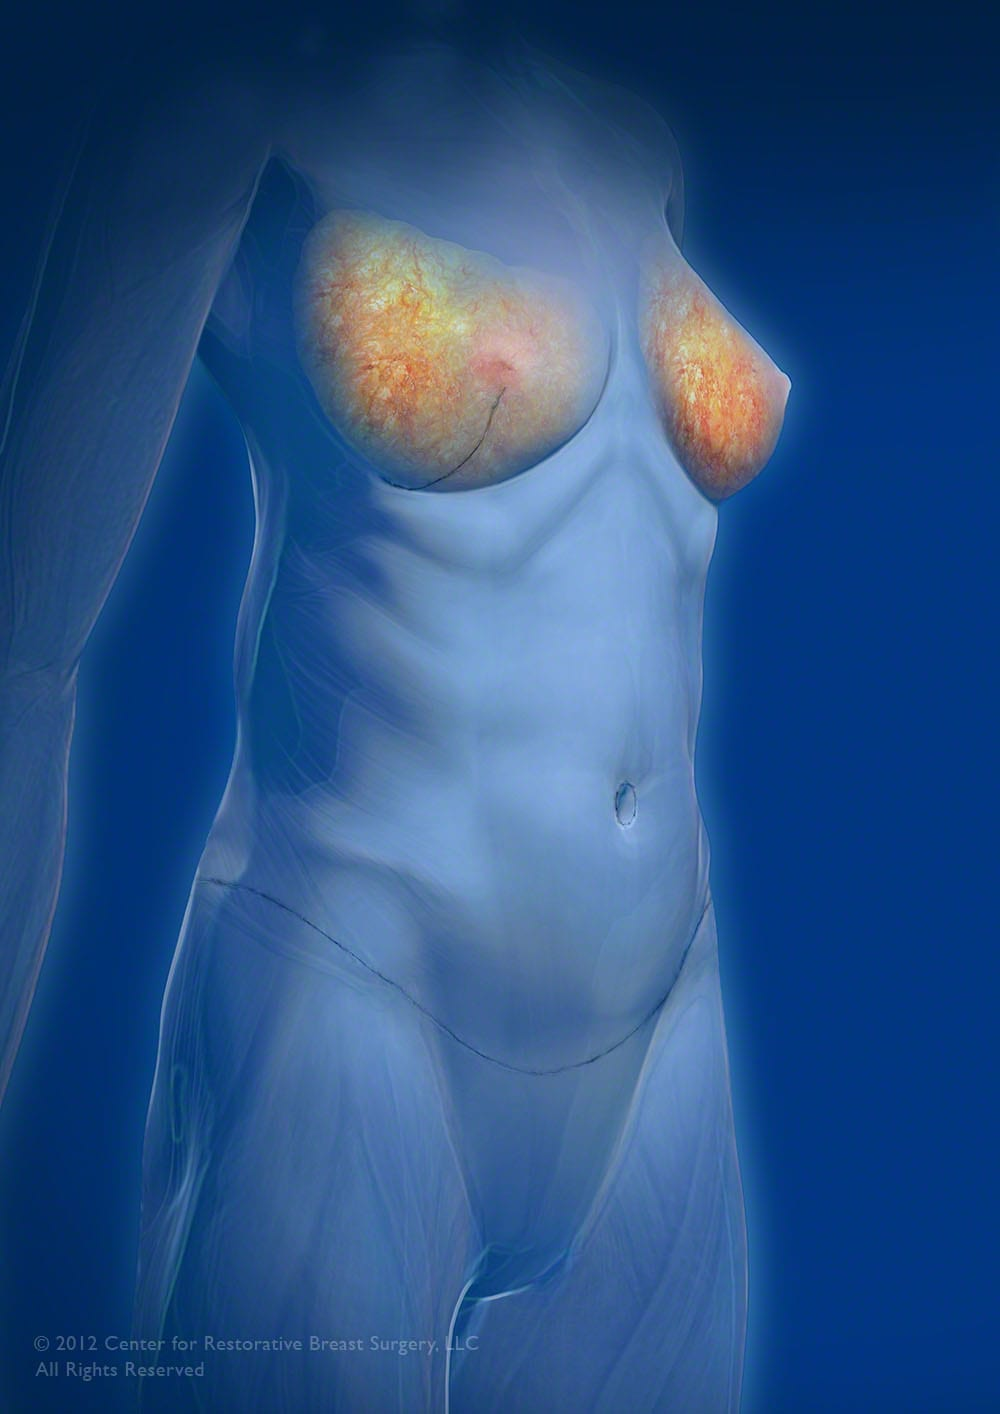 Image of Center For Restorative Breast Surgery in New Orleans, LA performing nipple sparing breast reconstruction